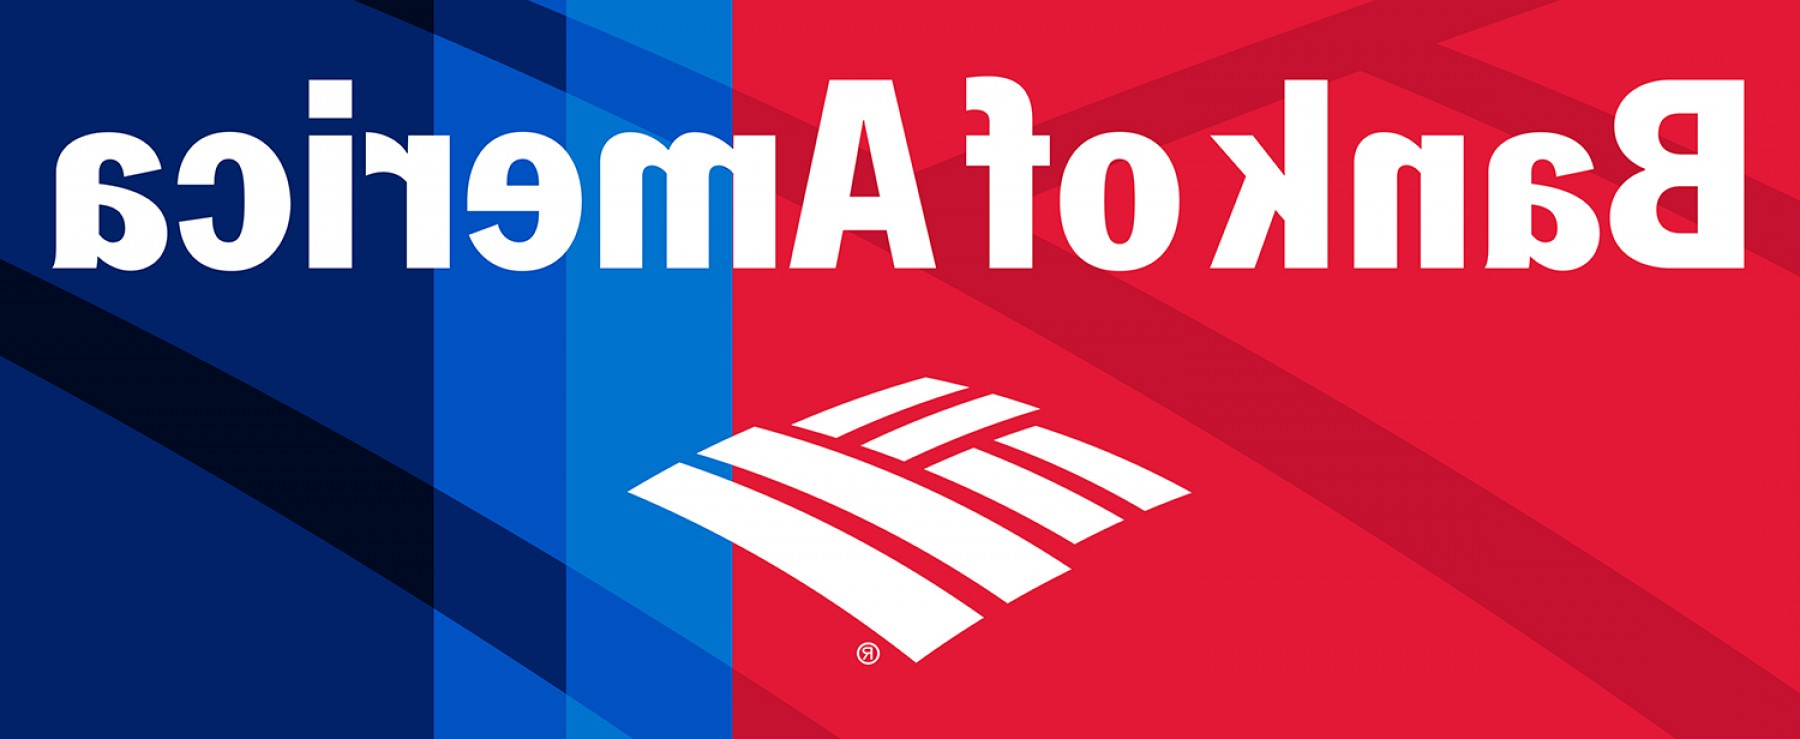 The World Vector Logos Of Brands: Bank Of America Vector Logos And Icons